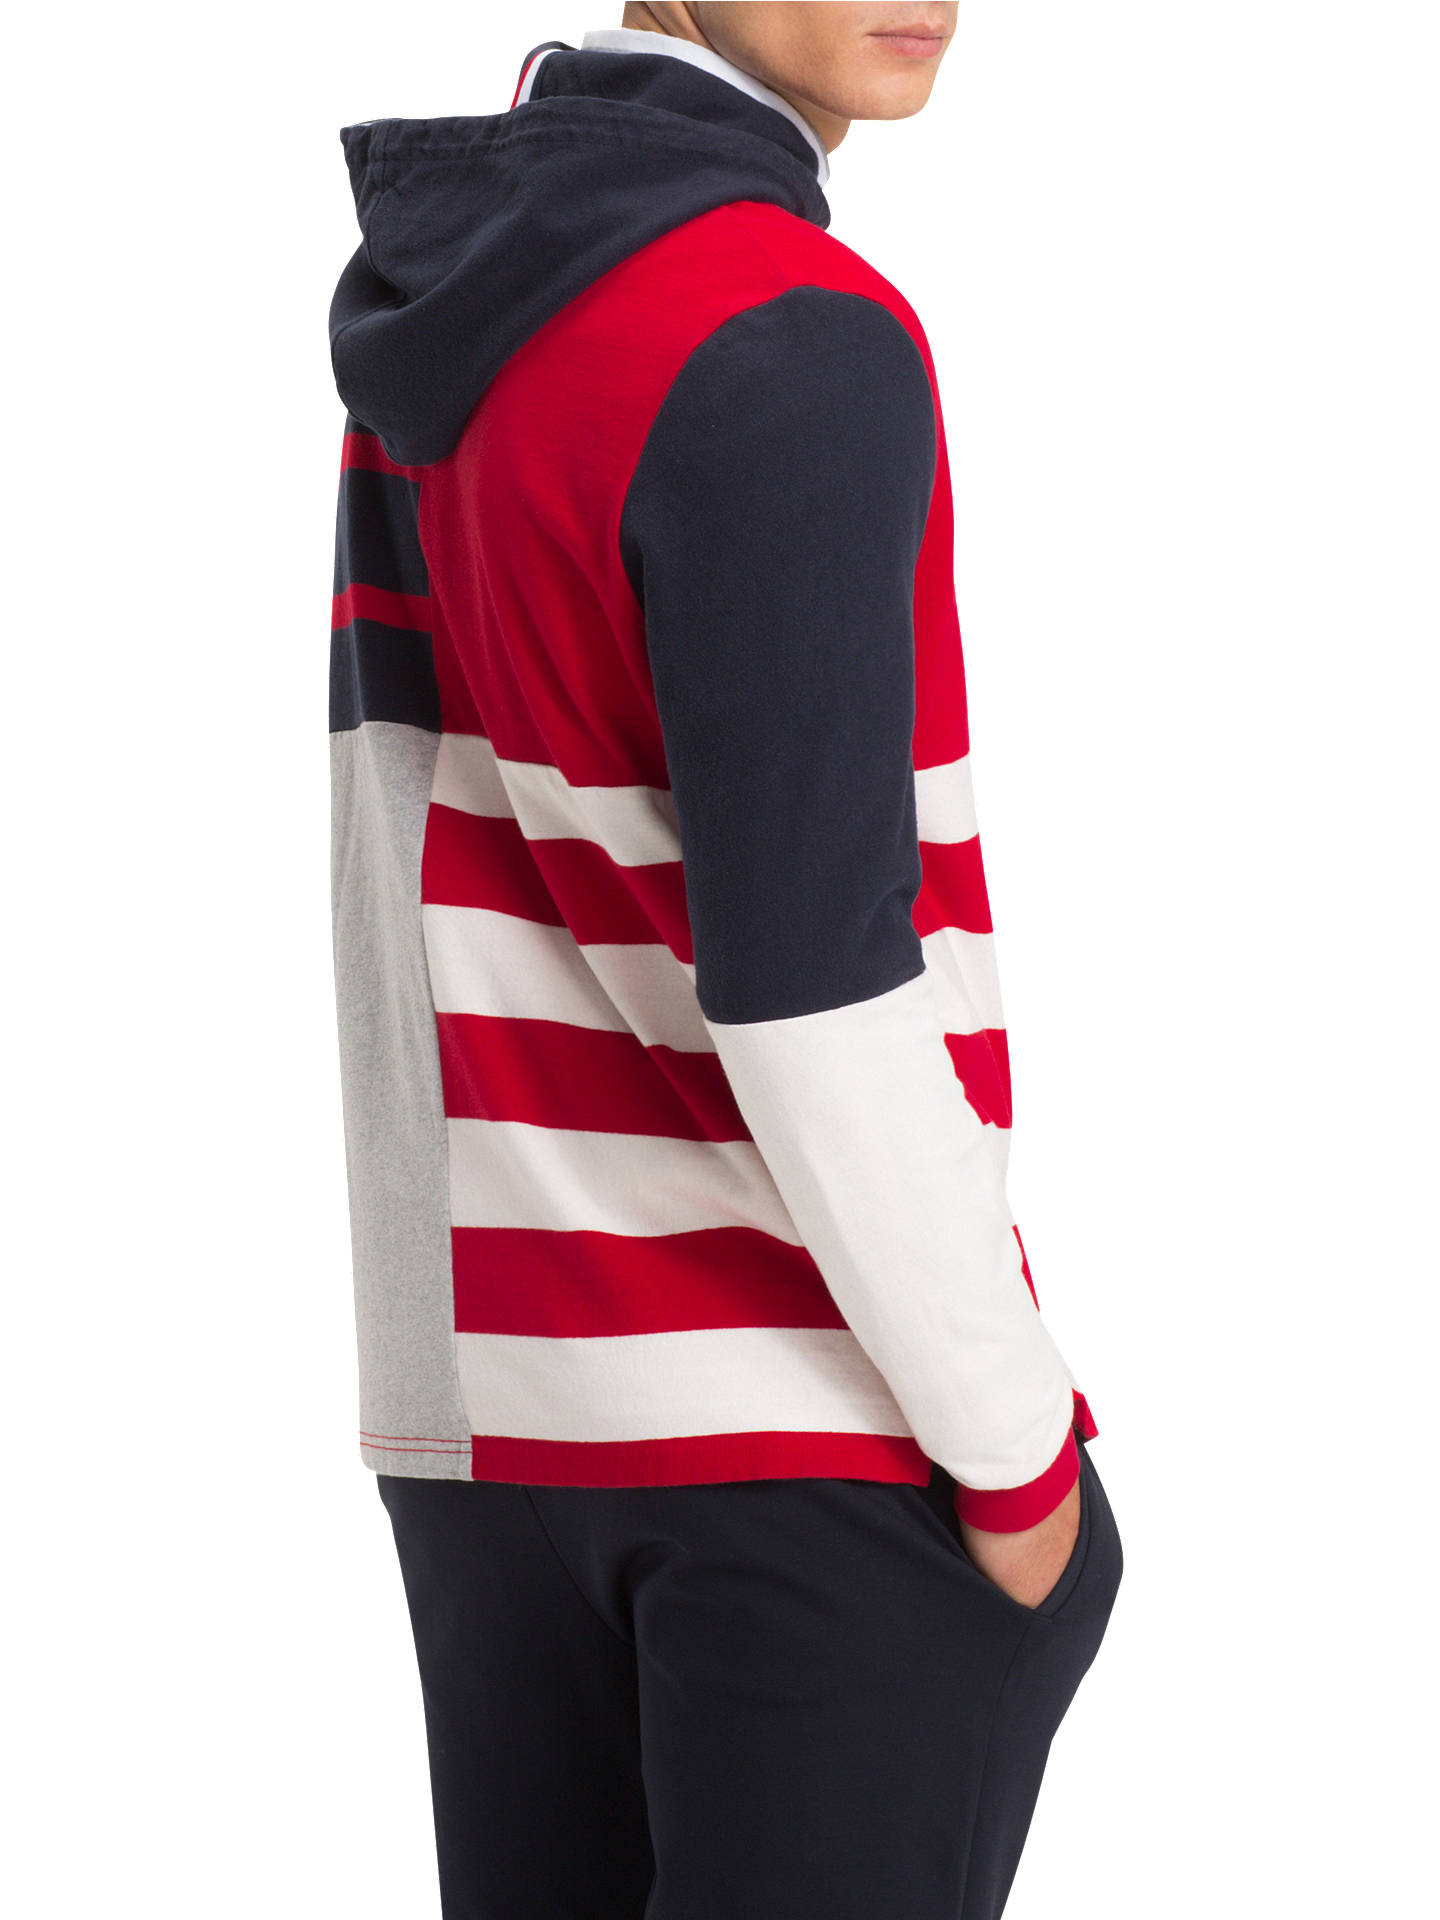 064fa2e6 Buy Tommy Hilfiger Stripe Hooded Rugby Shirt, Red Multi, L Online at  johnlewis.